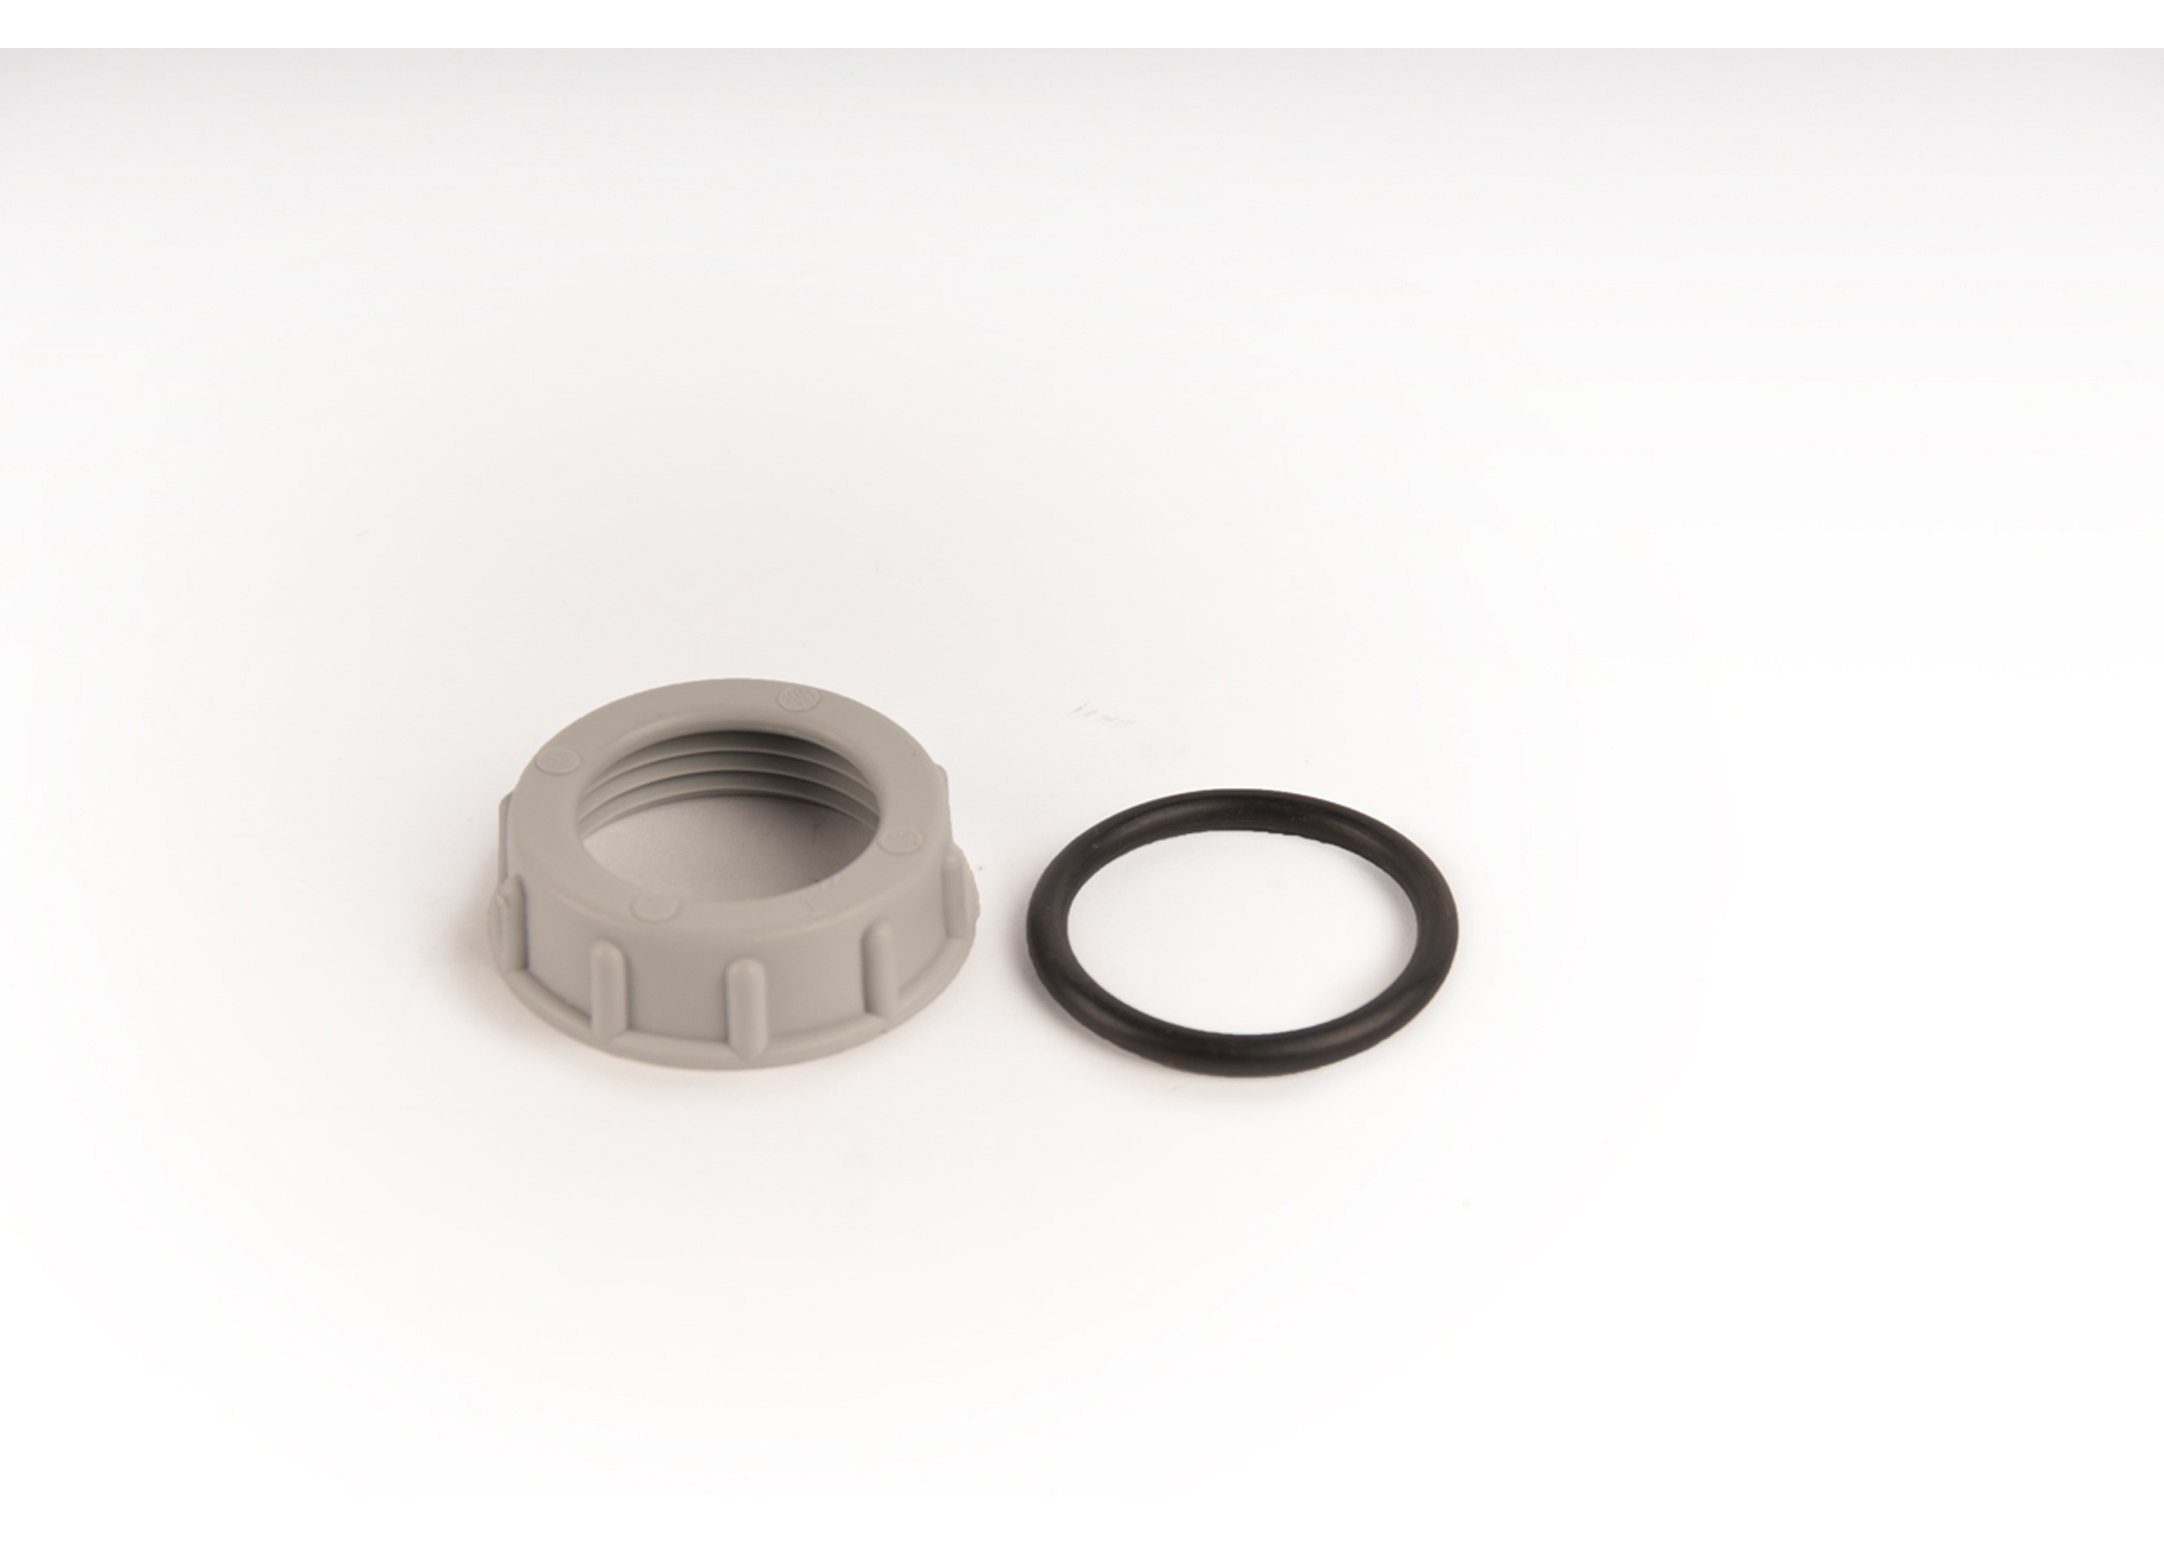 Booster Bath Hose Cap & Rubber Ring for Hose